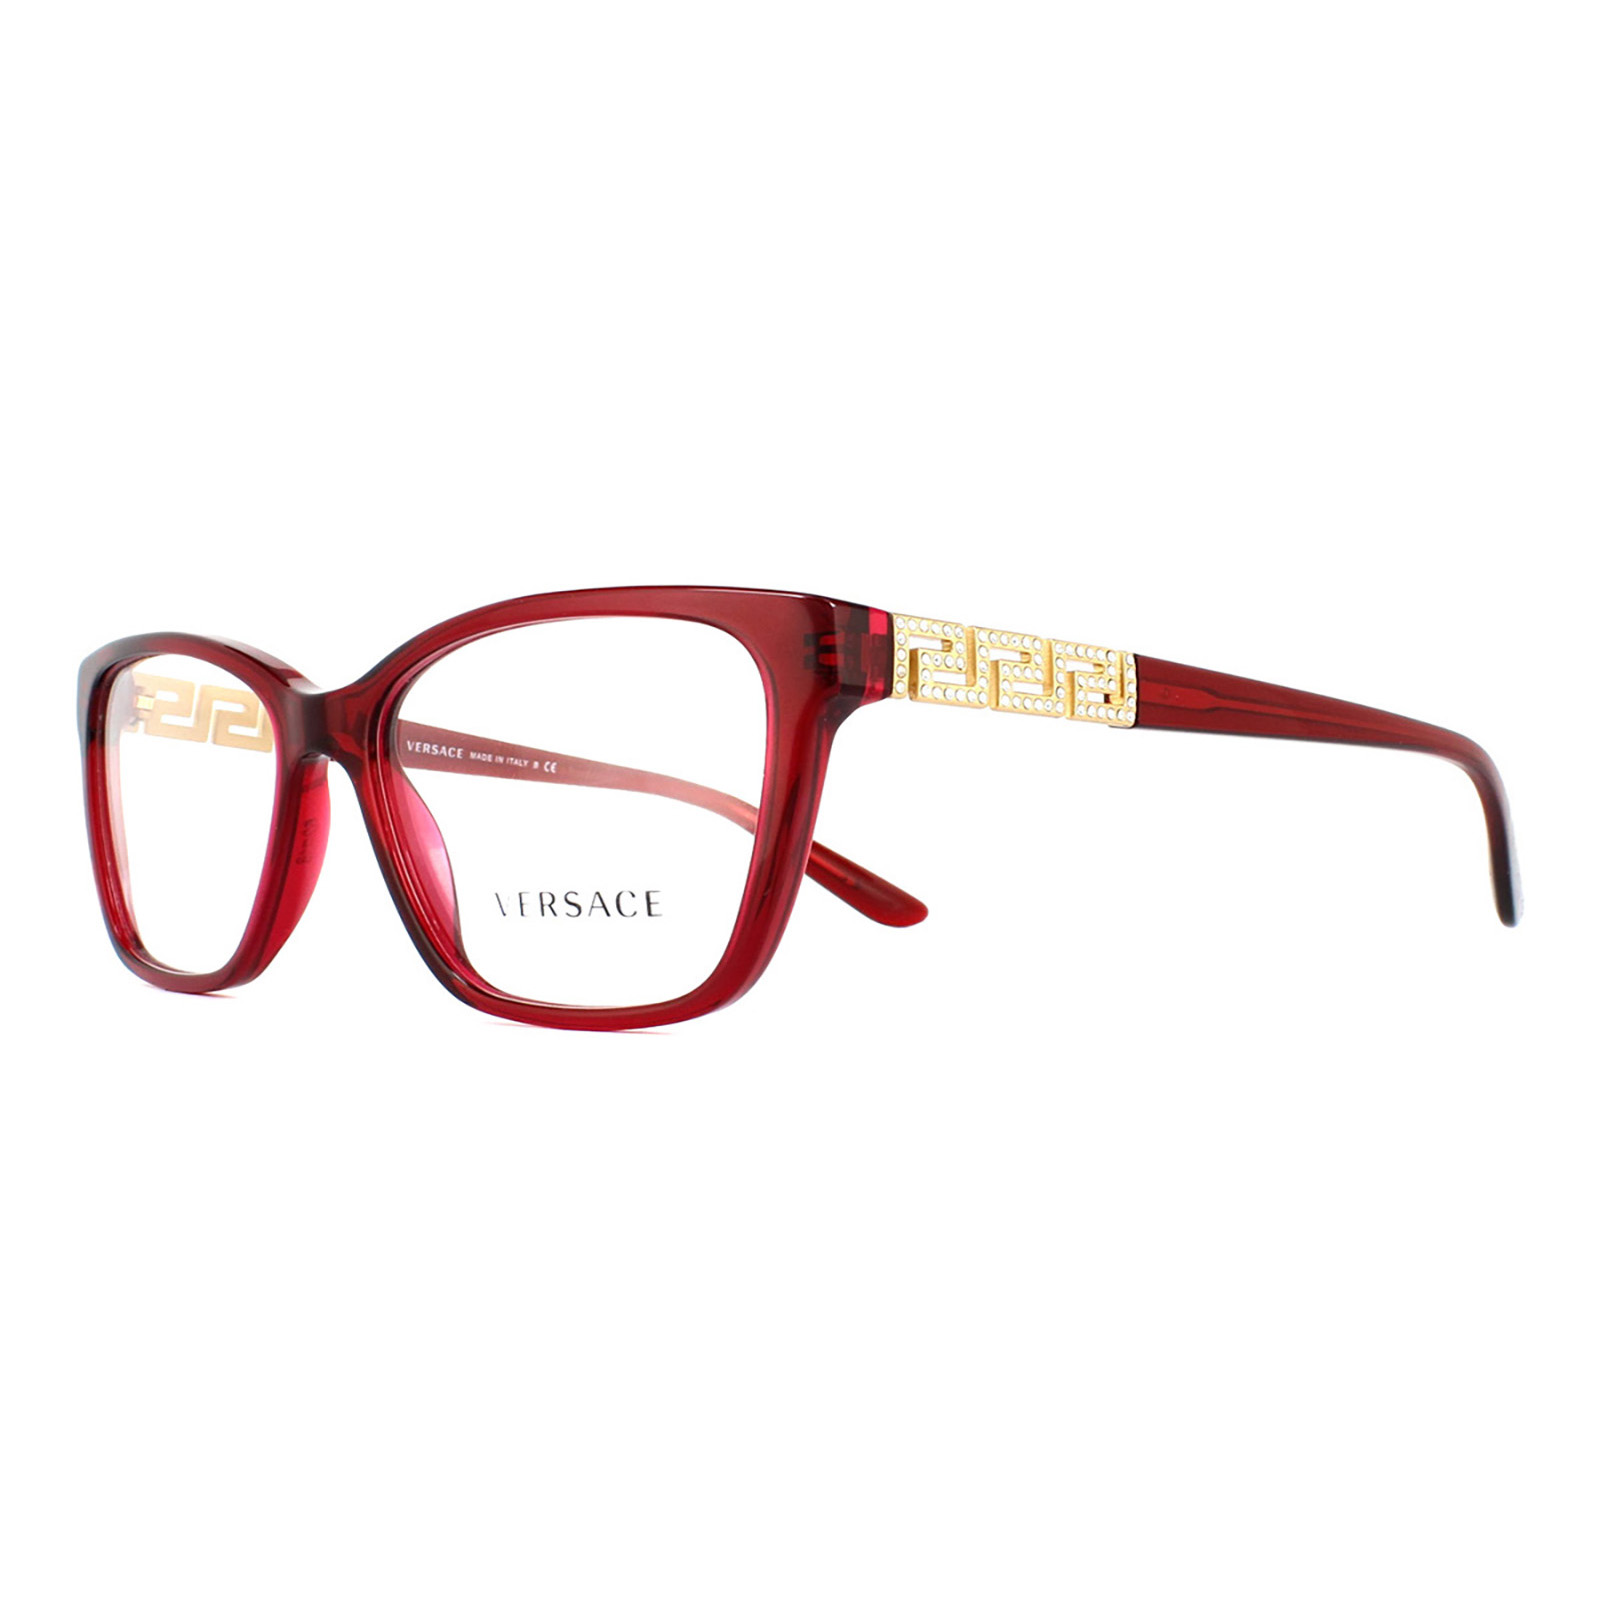 77e655ed1208 Versace Black Frame Glasses With Gold Detail For Sale In Versace Eyewear  Frames: Cheap Versace 3192B Glasses Frames